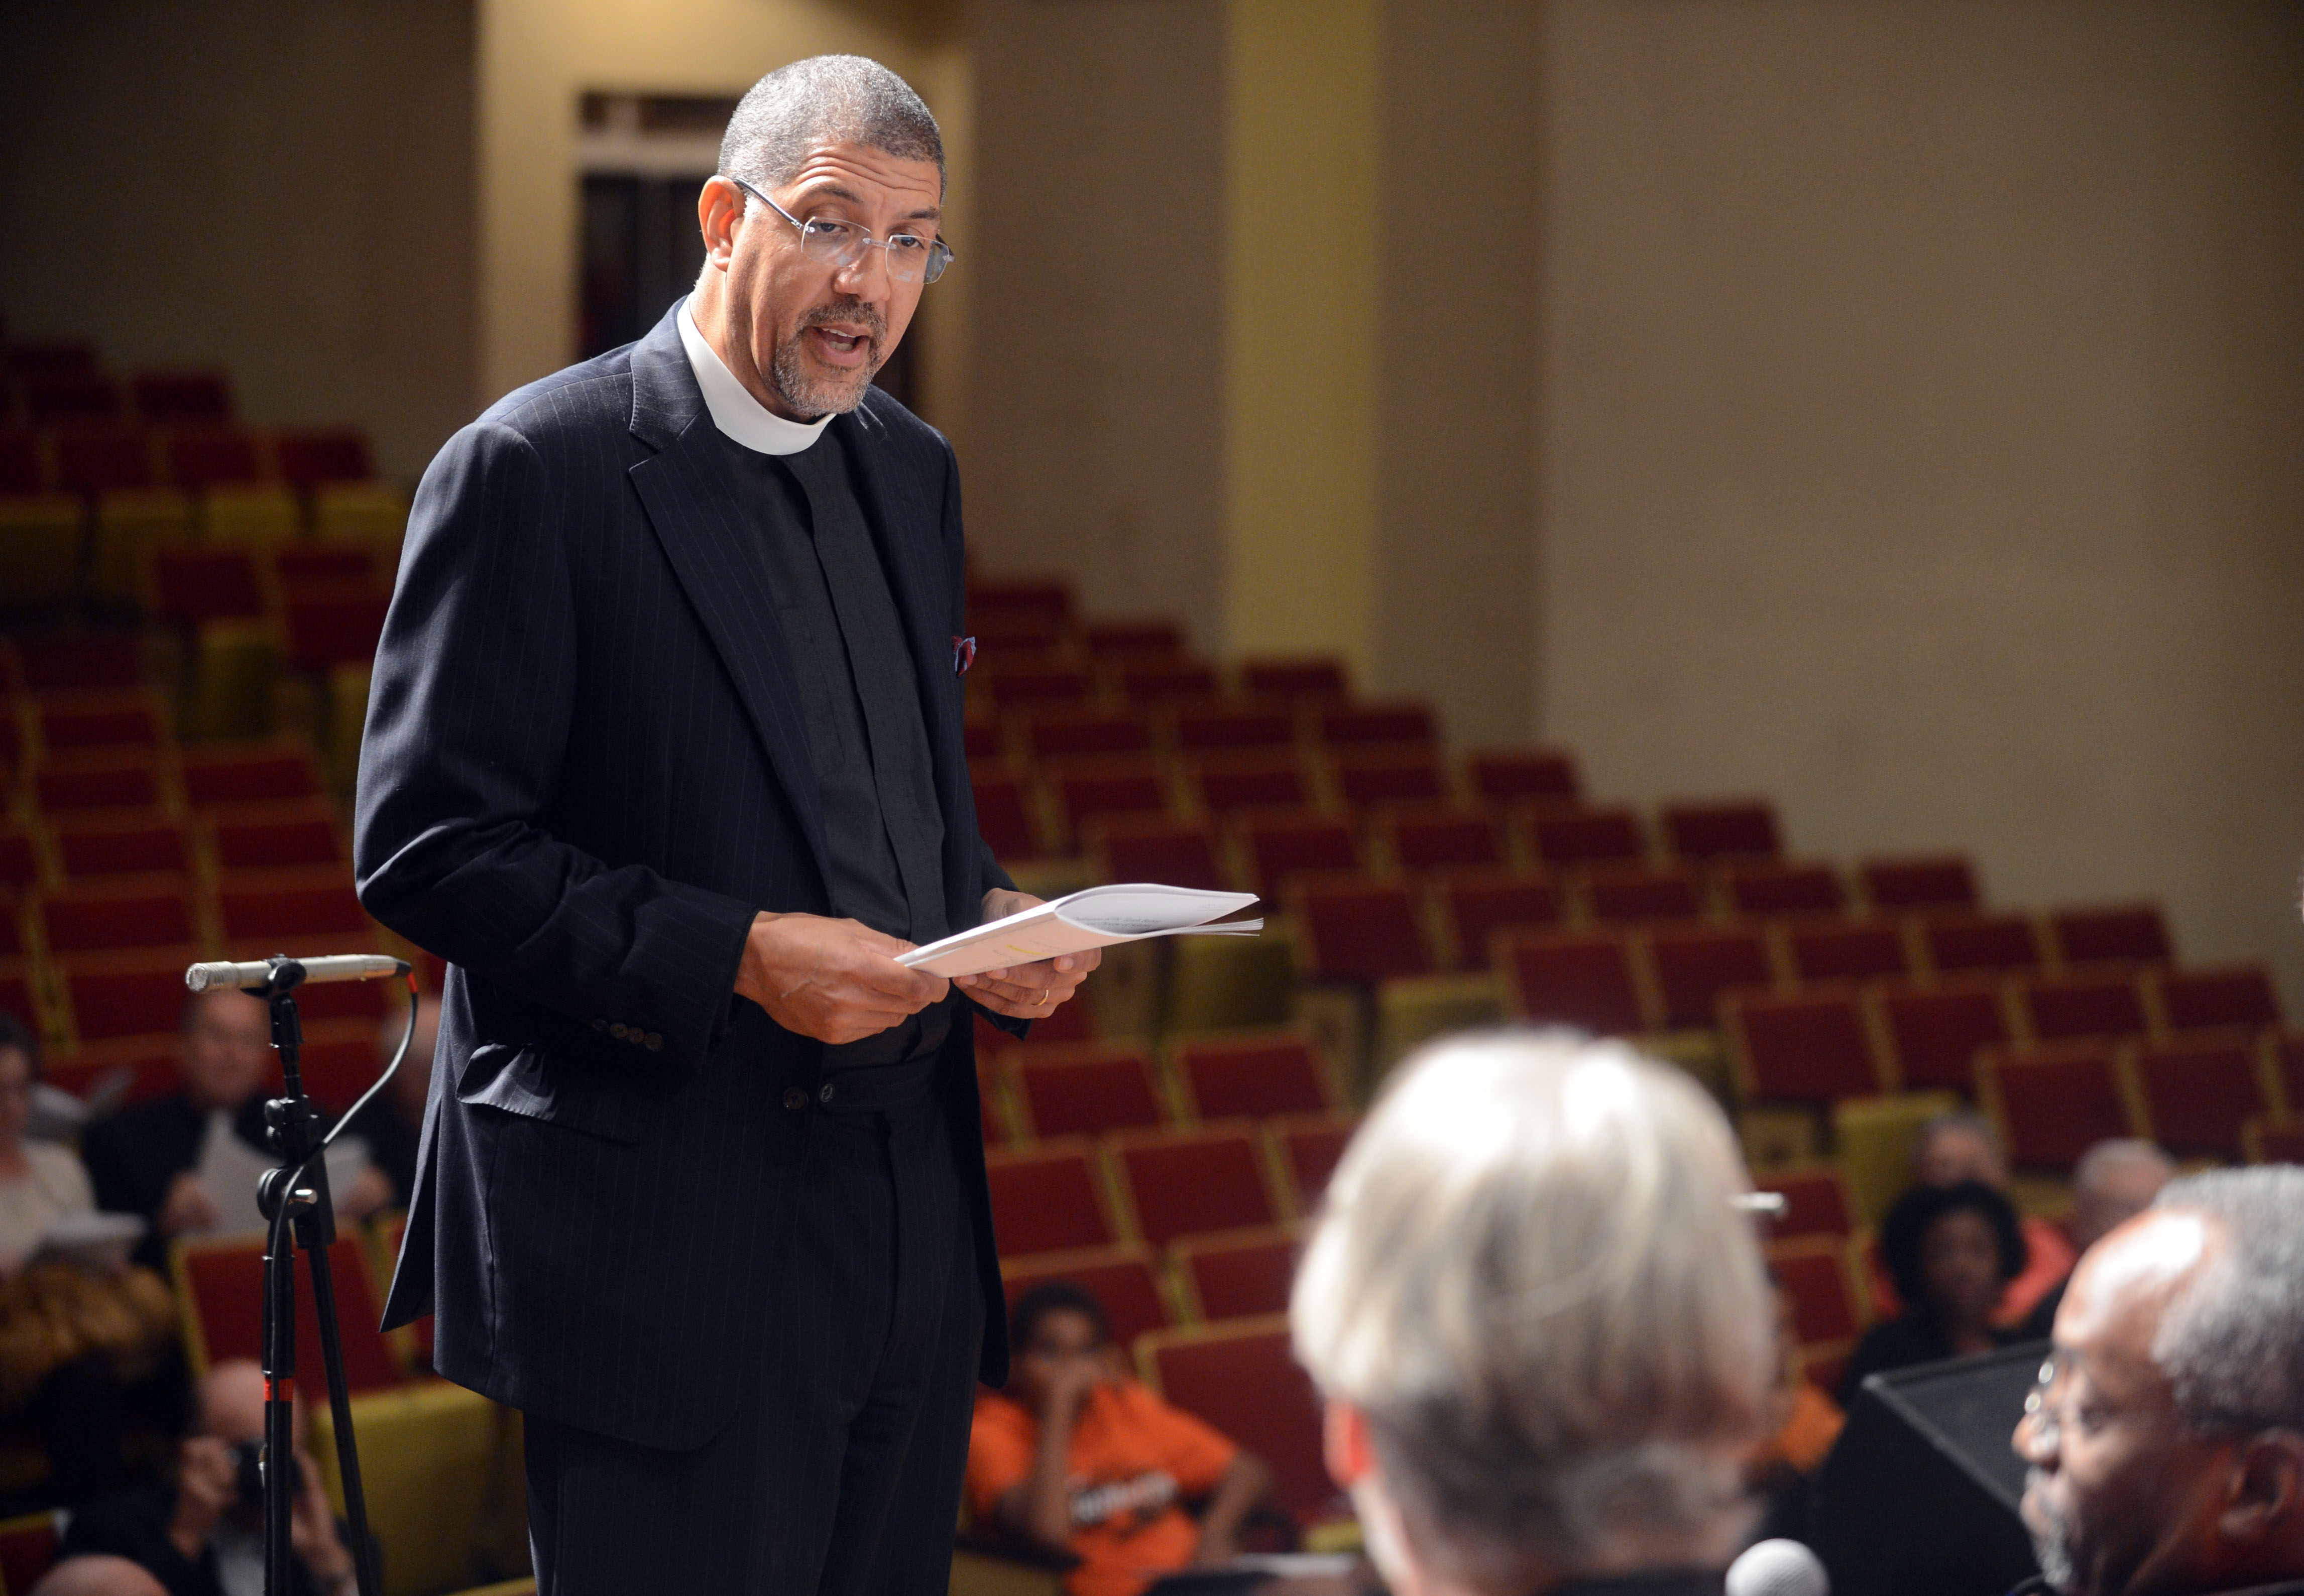 Bishop Rev. Robert Christopher Wright participates in a rehearsal for his installation service at the Martin Luther King Jr. International Chapel on the campus of Morehouse College in Atlanta on Oct. 12, 2012.